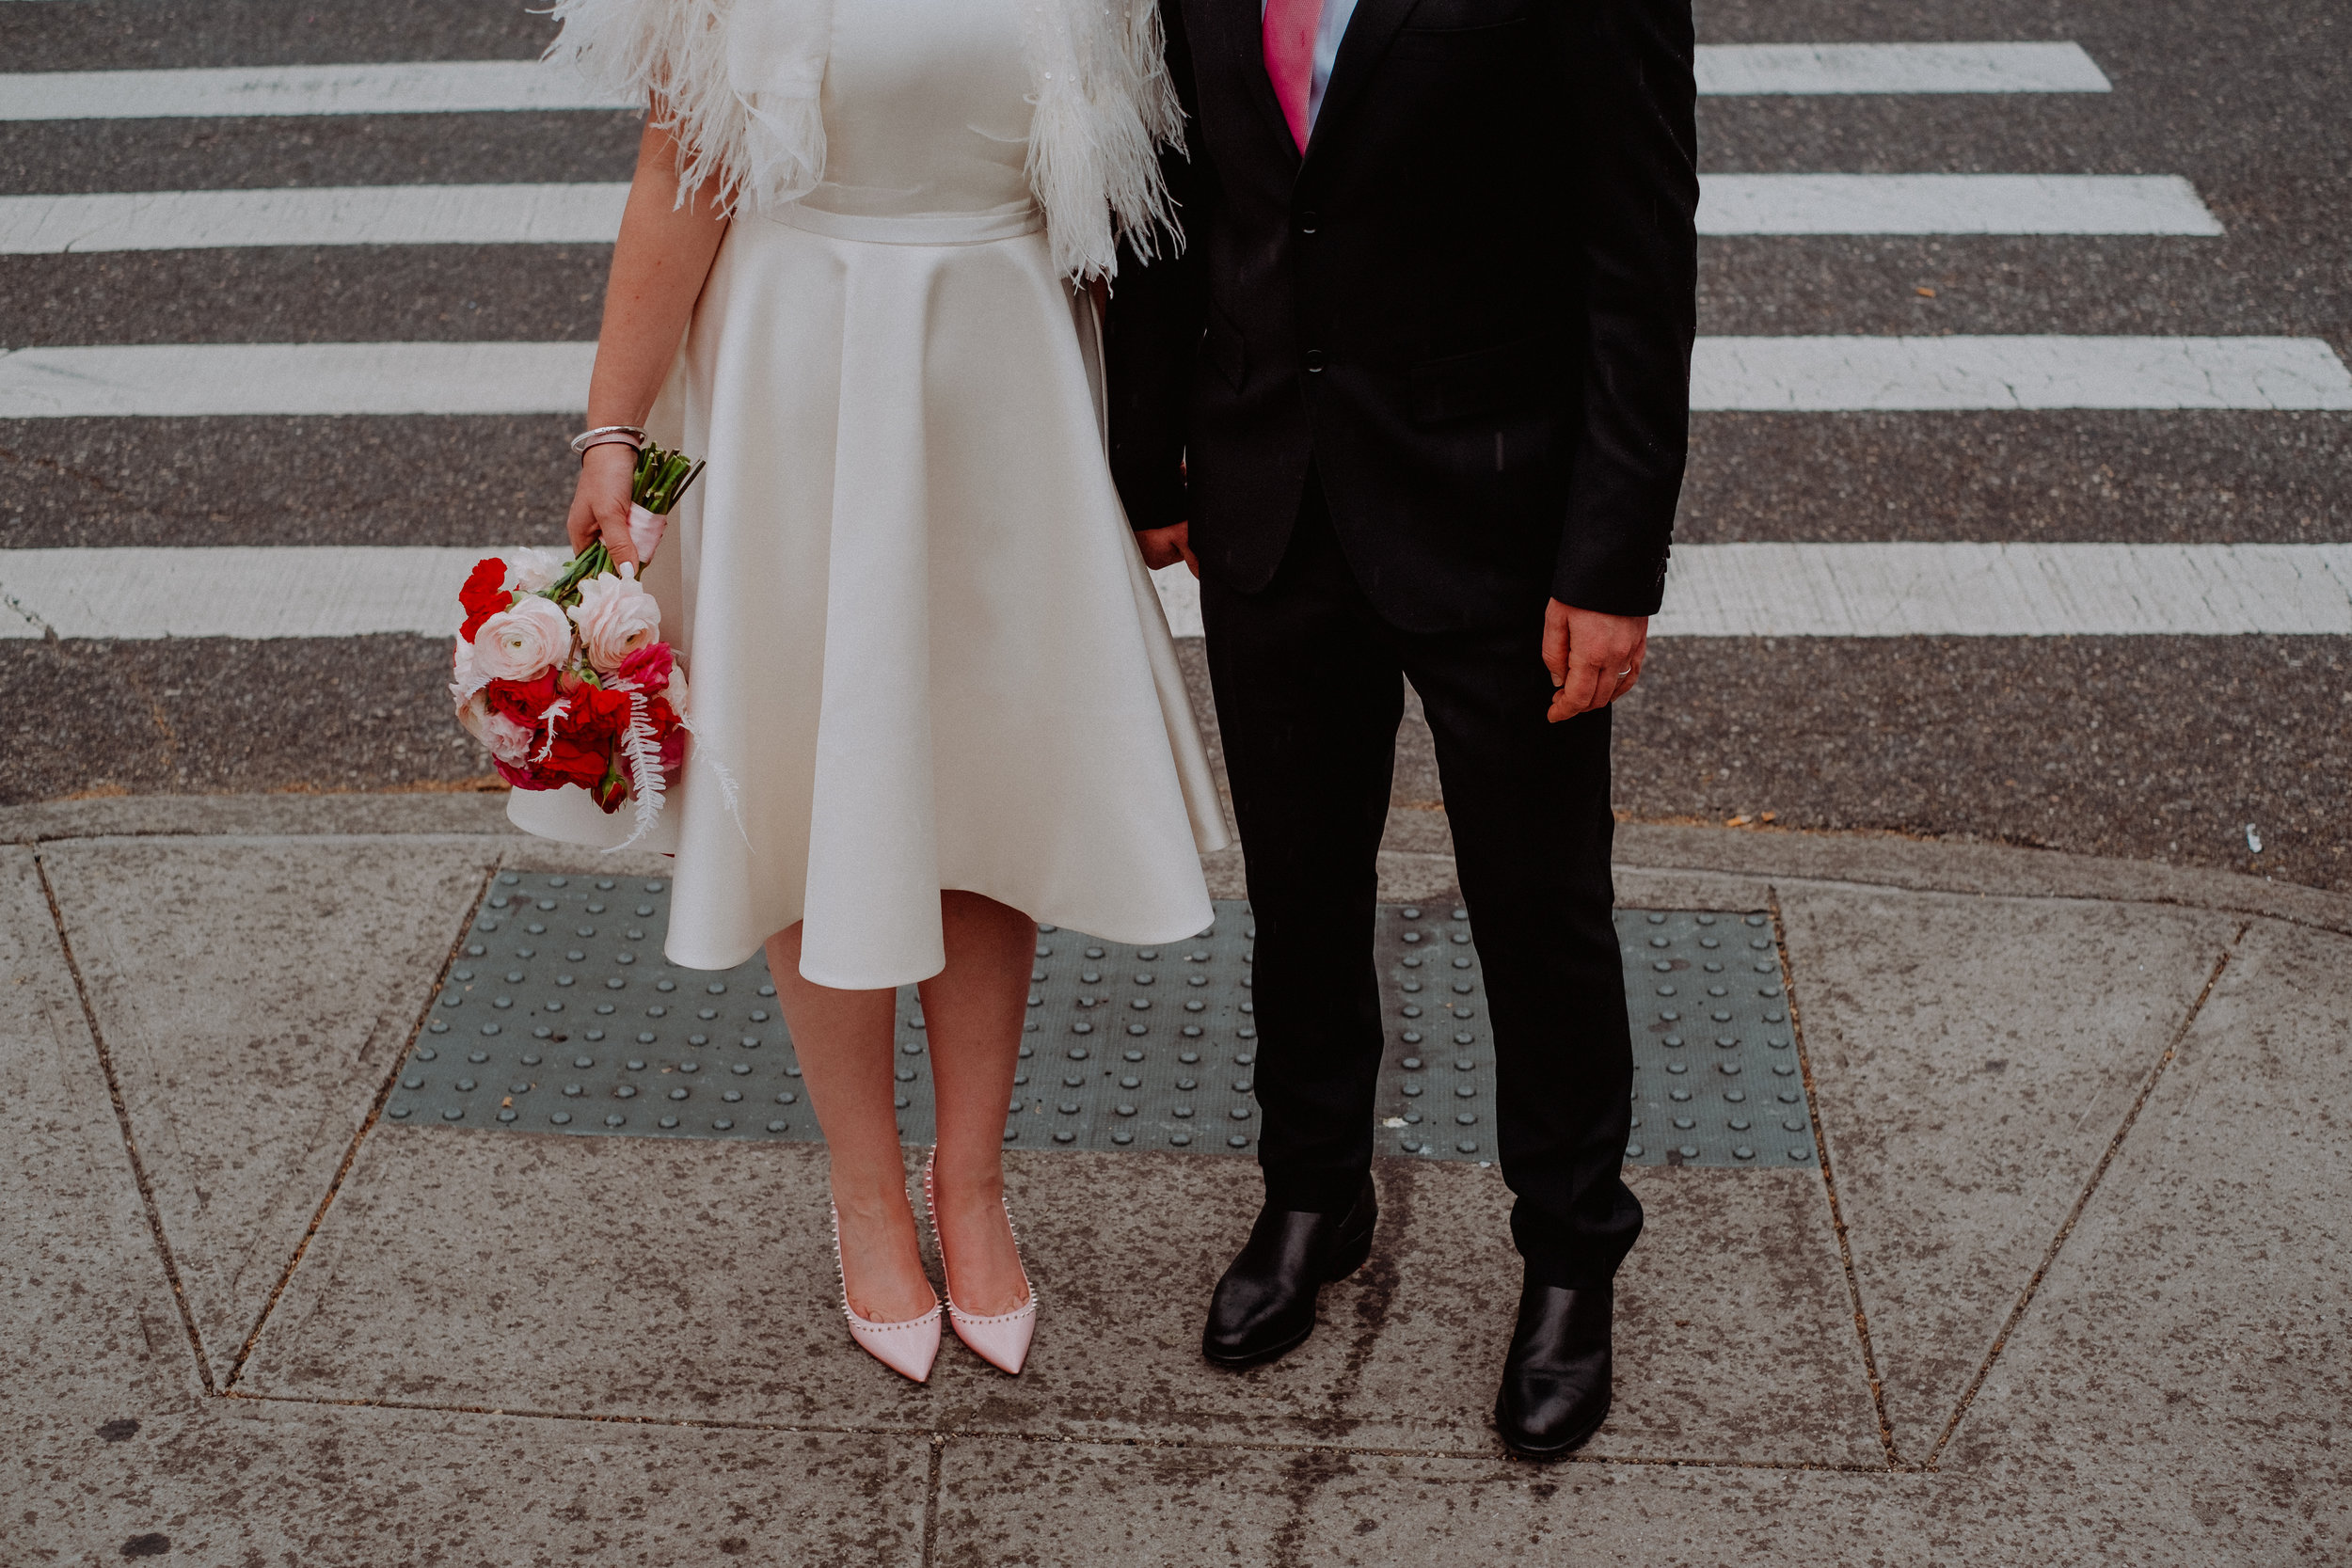 Brooklyn_City_Hall_Elopement_Photographer_Chellise_Michael_Photography254.JPG